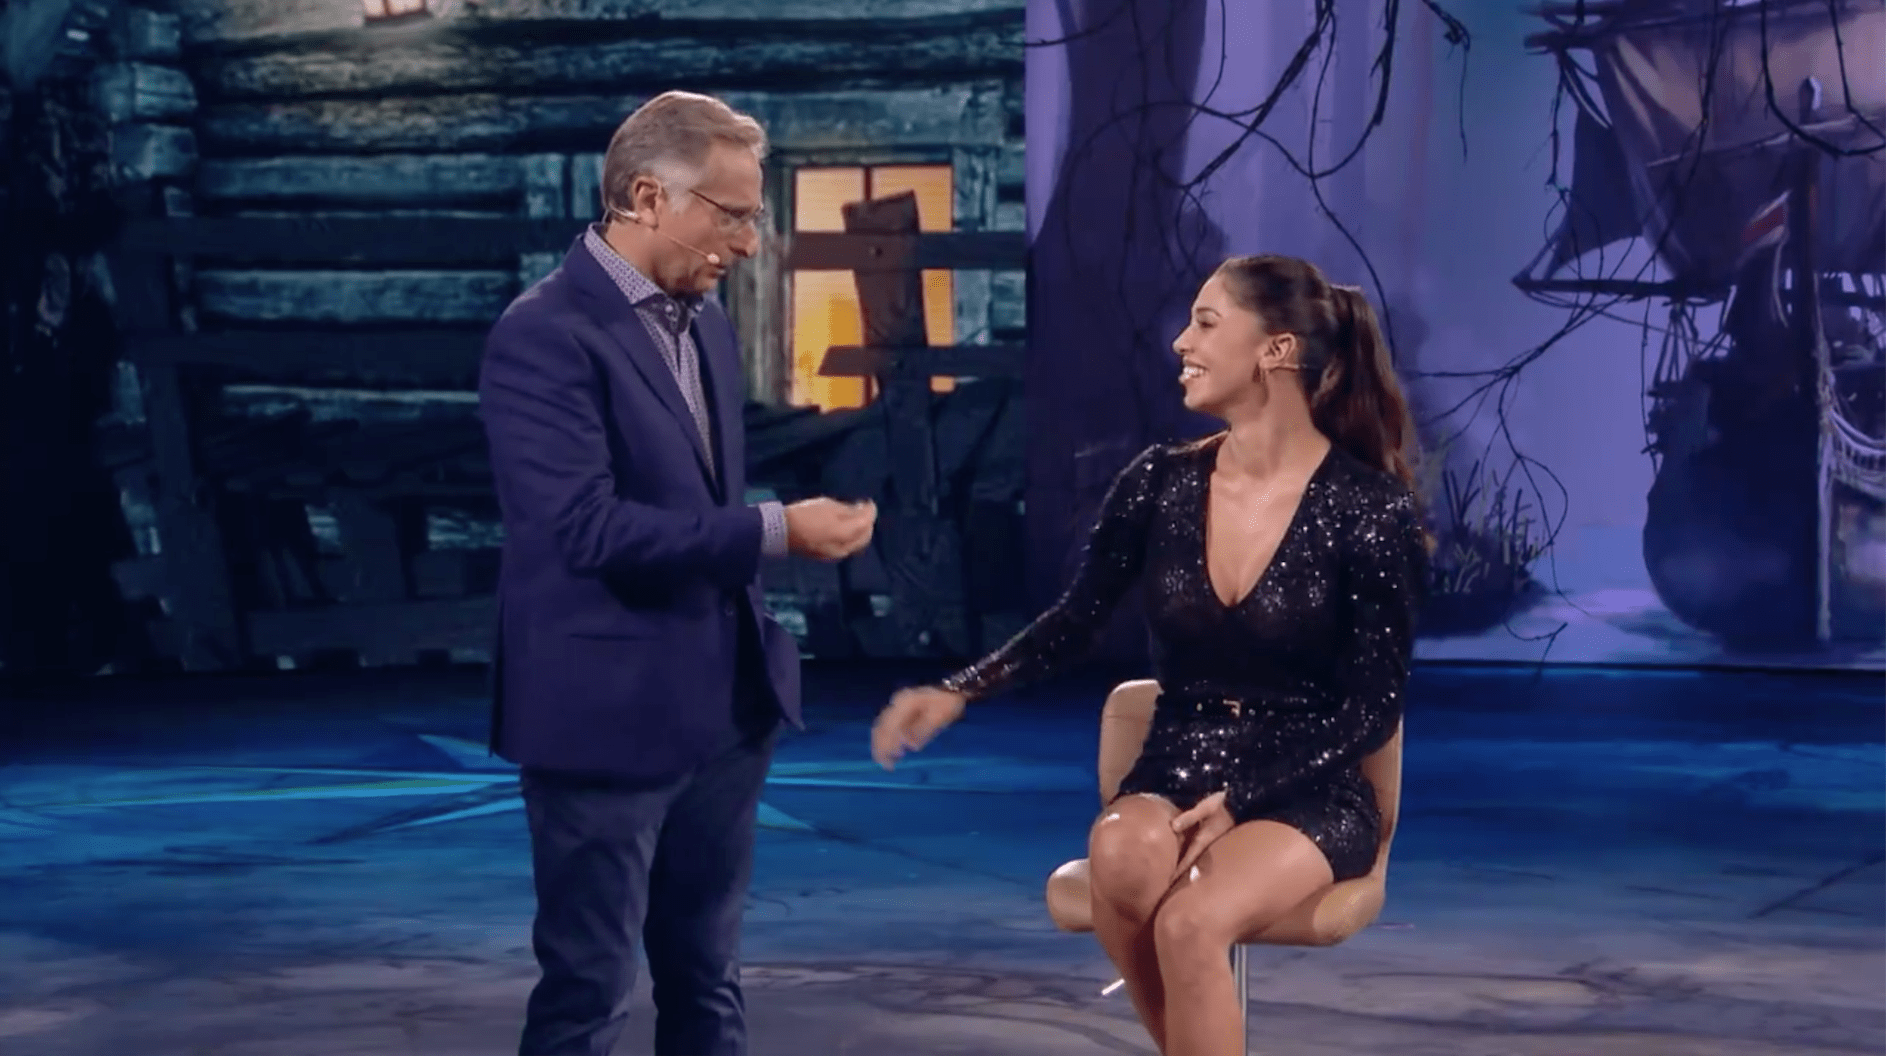 belen rodriguez gaffe su canale 5 chi ha incastrato peter pan